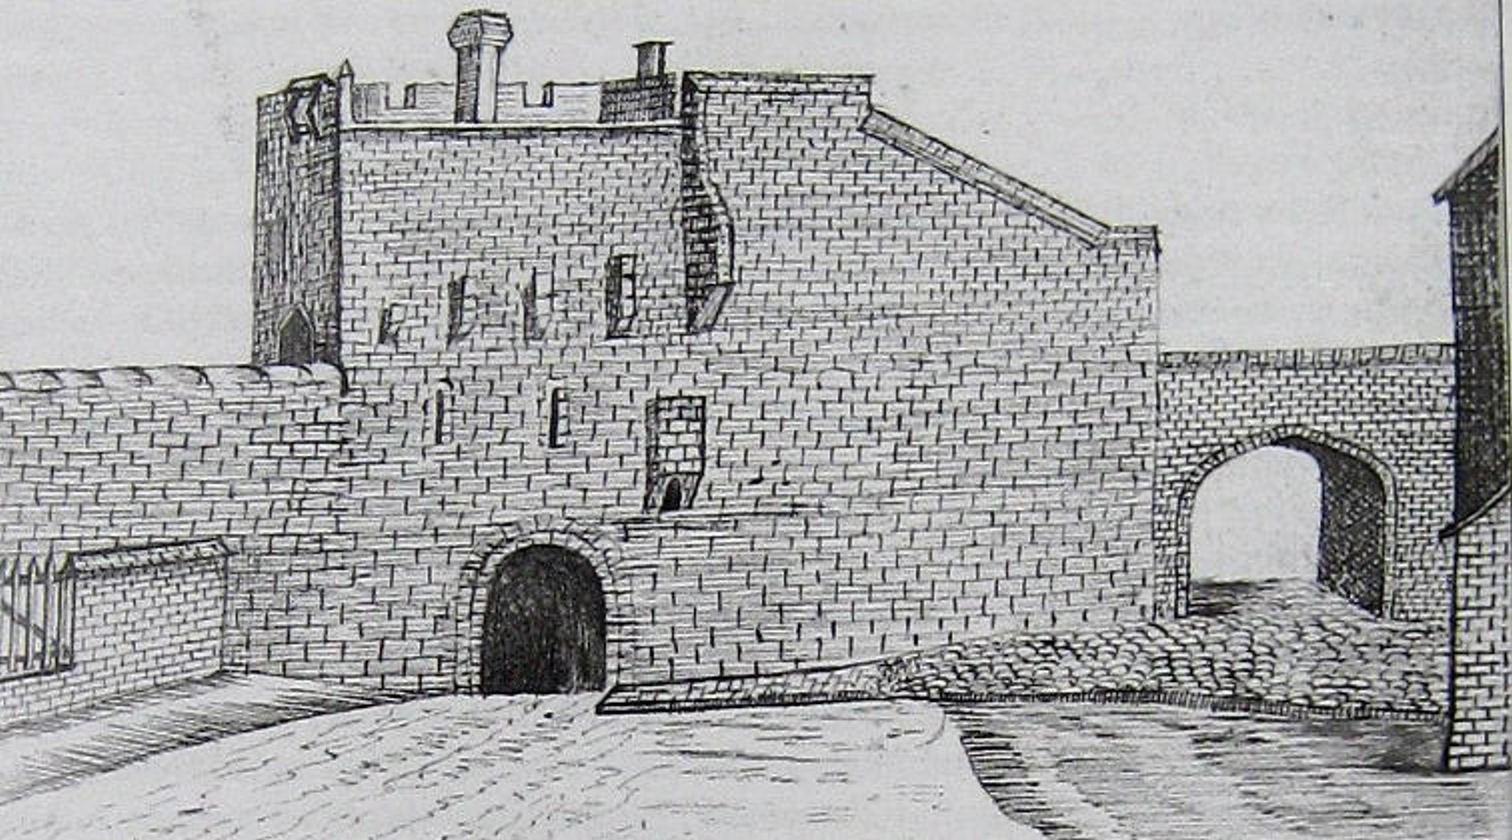 prison history Brief history during the snow era (1813-58) the history of the newgate prison probably dates back to the 12th century or.